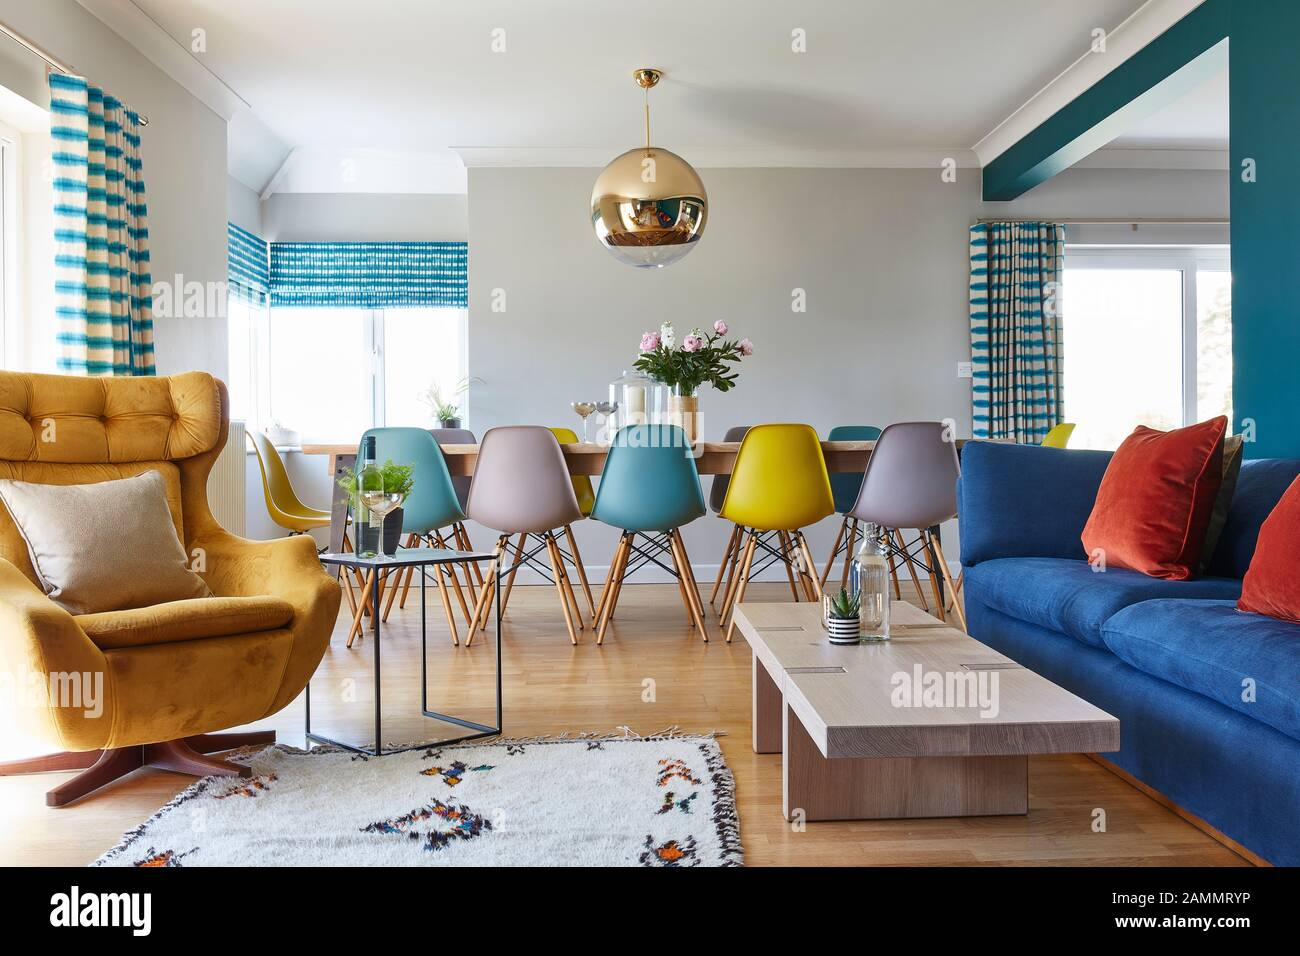 Lounge Diner High Resolution Stock Photography And Images Alamy